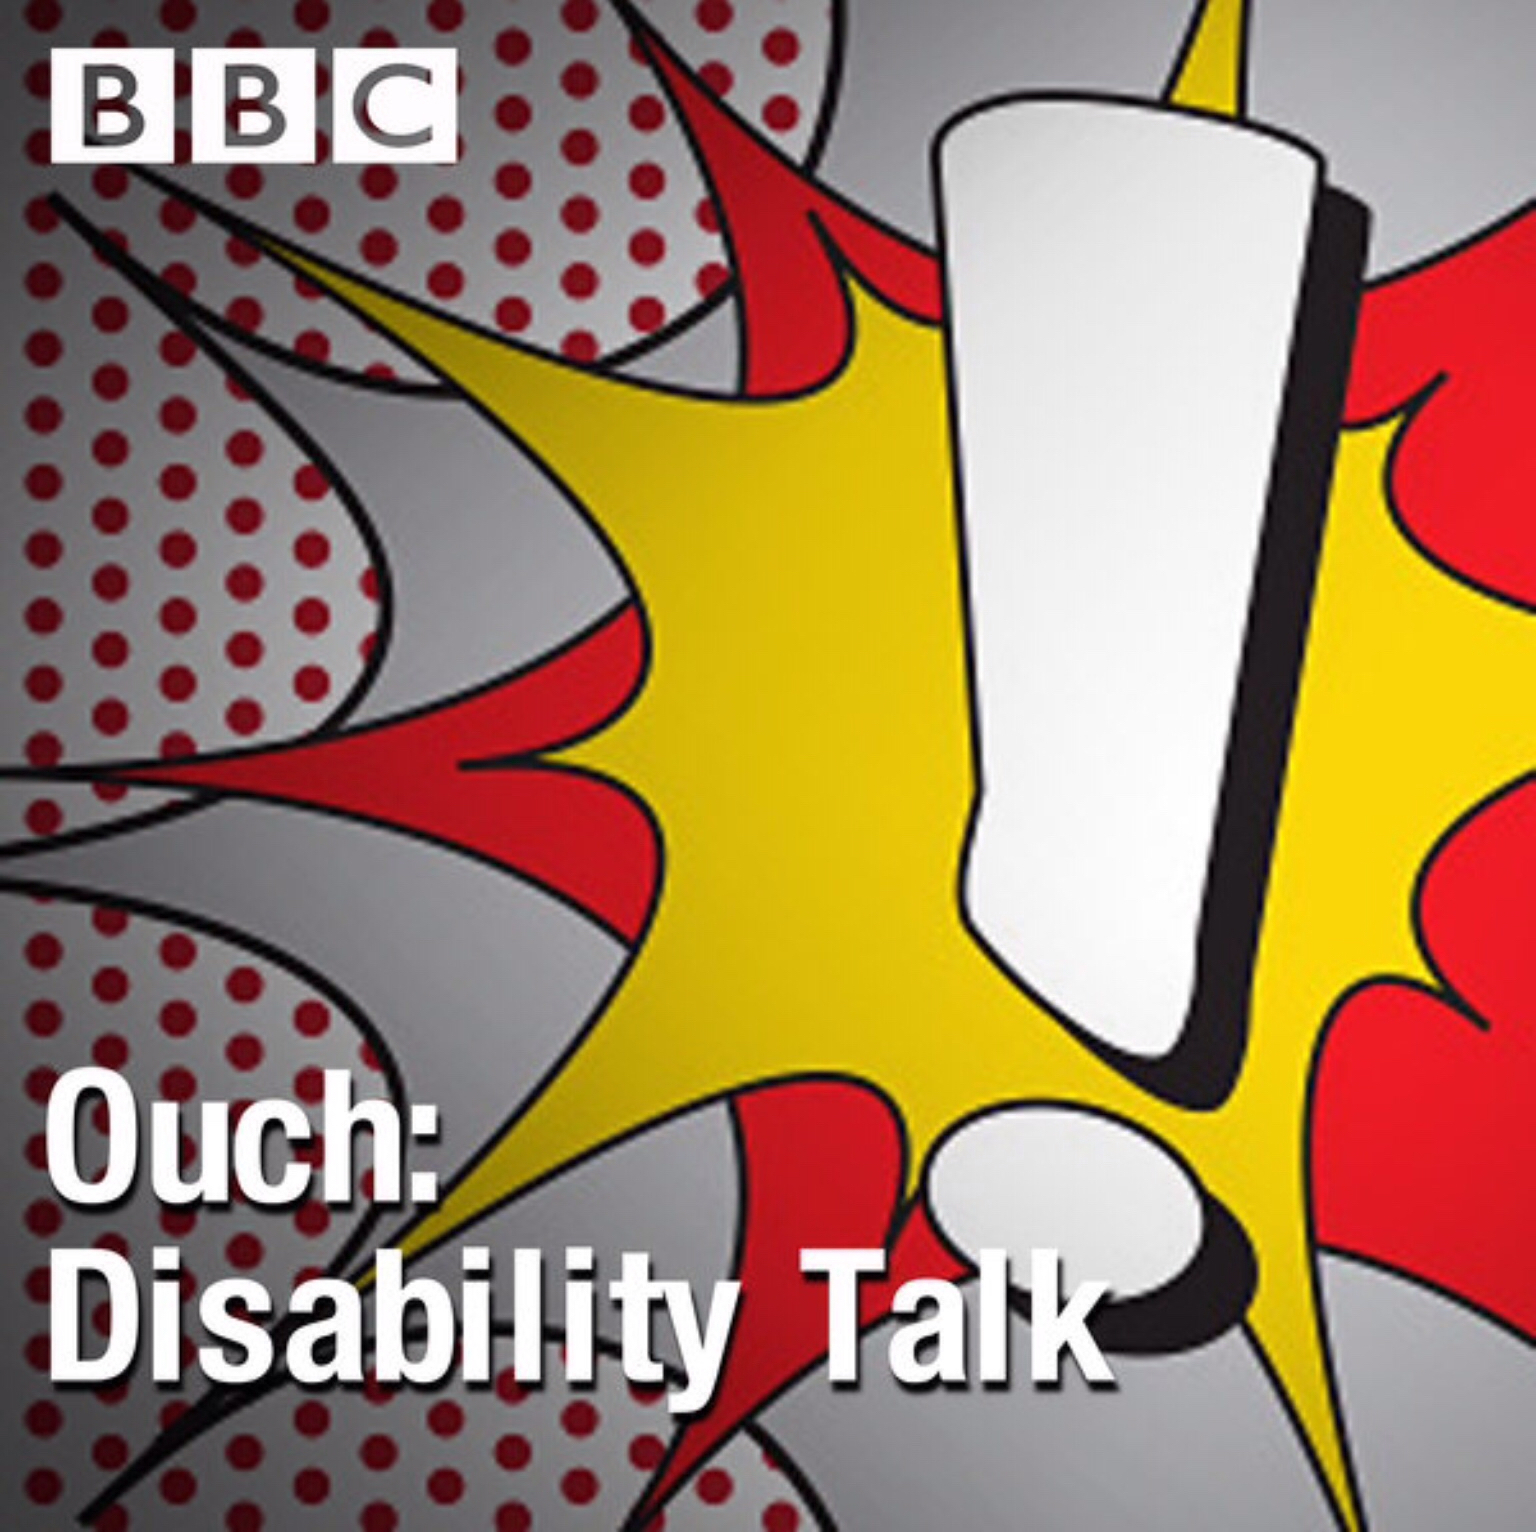 Six podcasts about disabilities, chronic illnesses and mental health